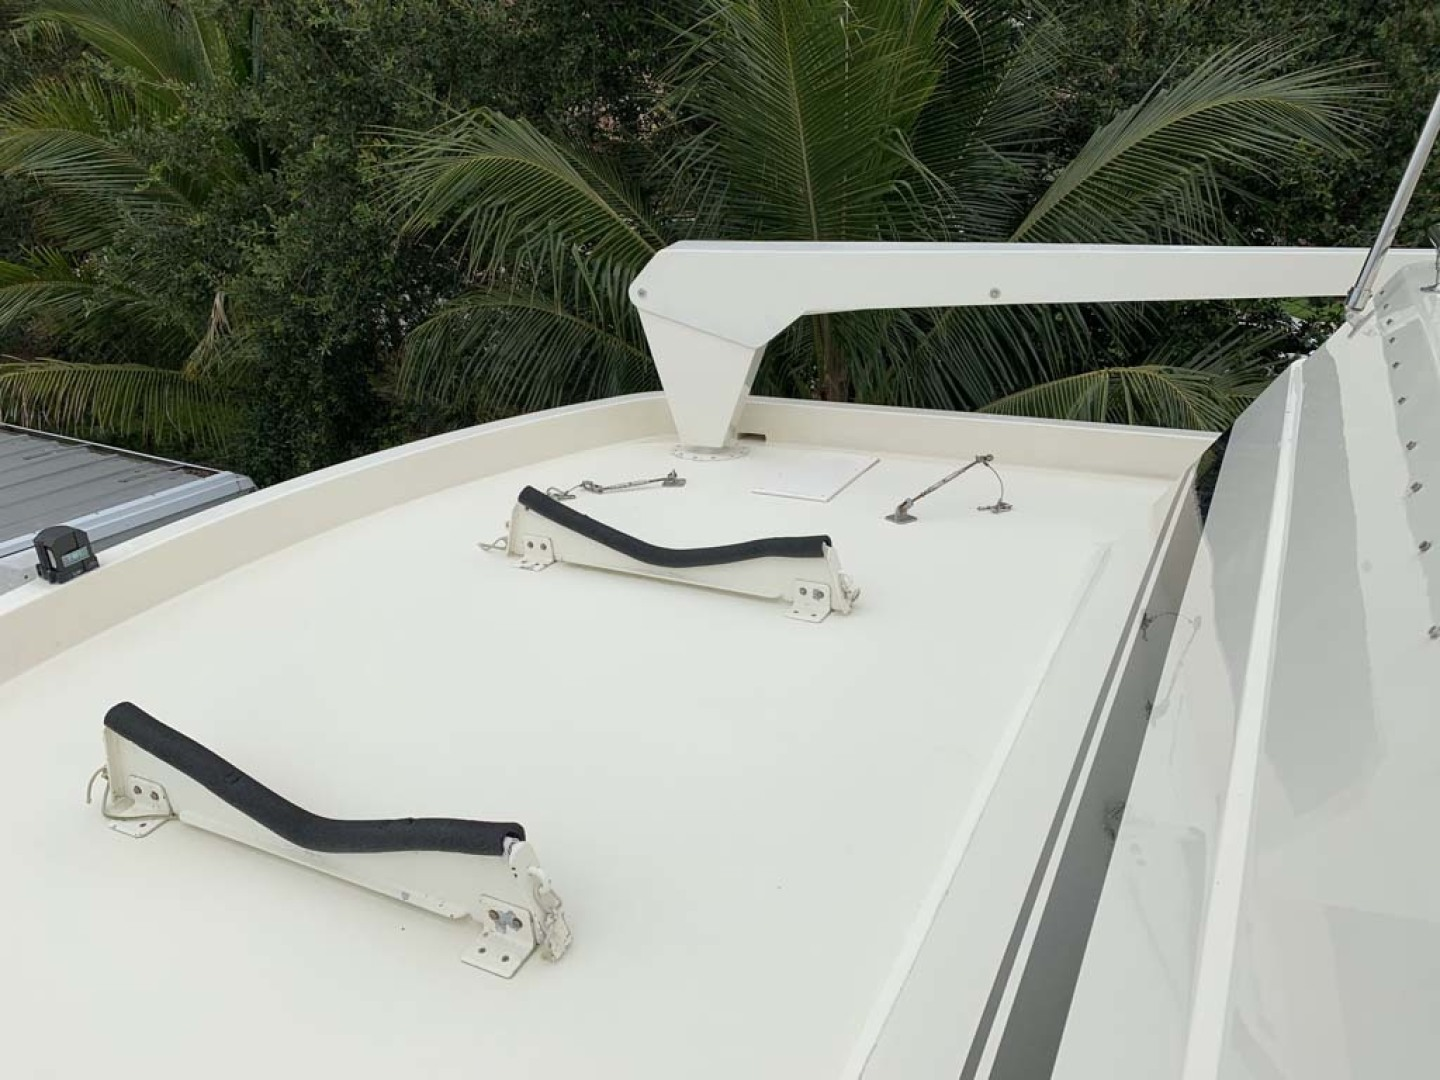 Hatteras-Euro Transom Motor Yacht 1989-Different Drummer II Stuart-Florida-United States-Davit-1450008 | Thumbnail